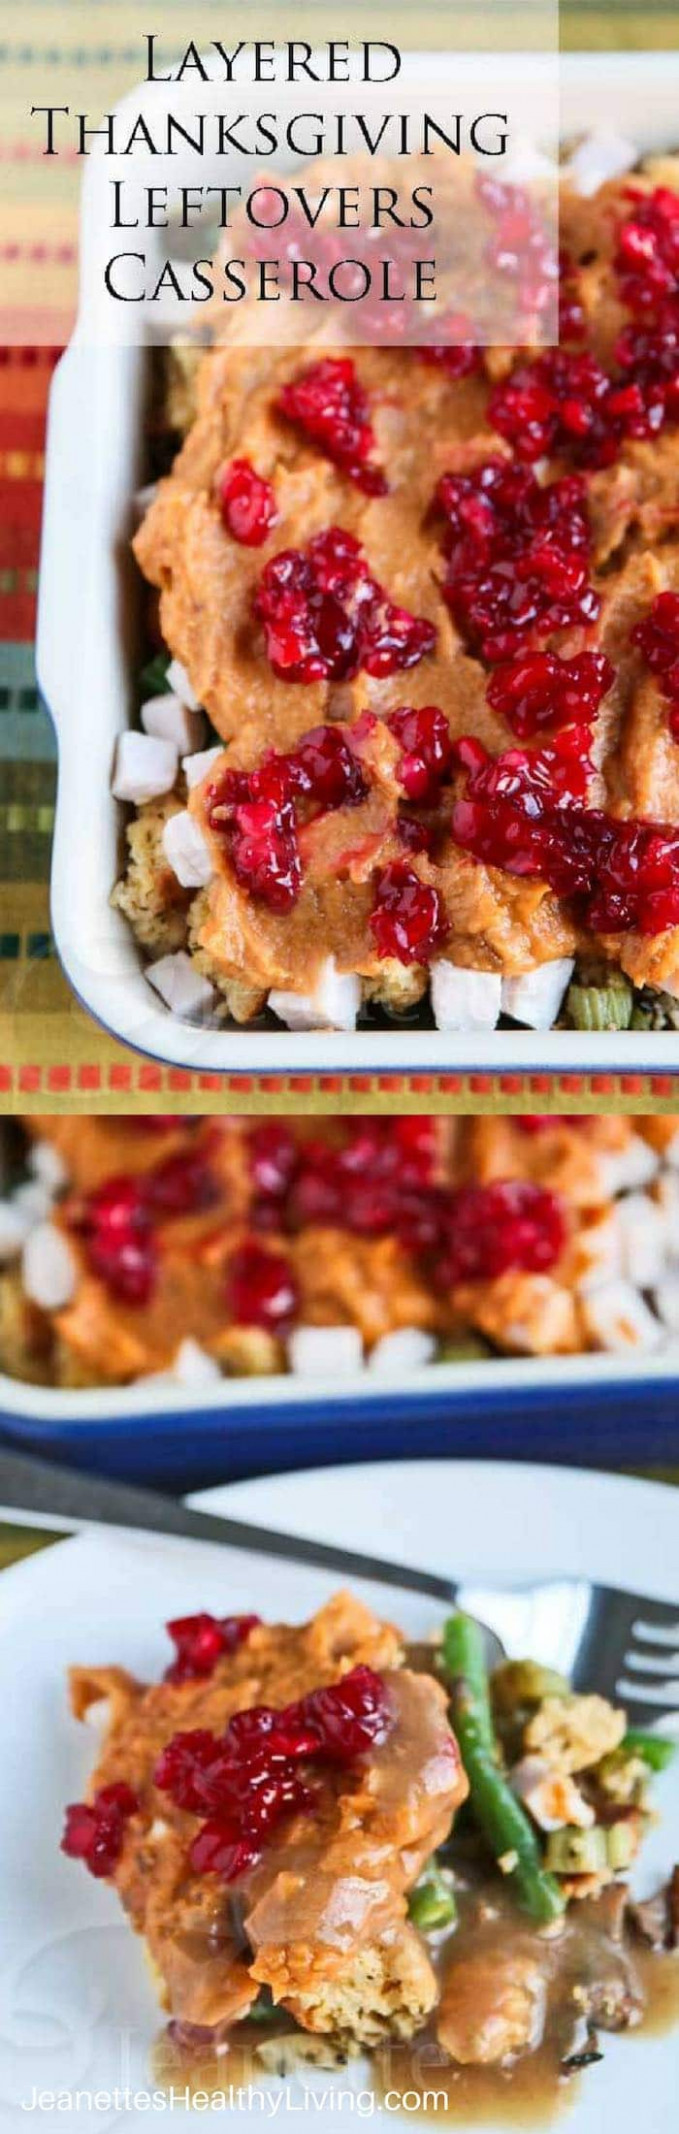 Layered Thanksgiving Leftovers Casserole Recipe {30 ...